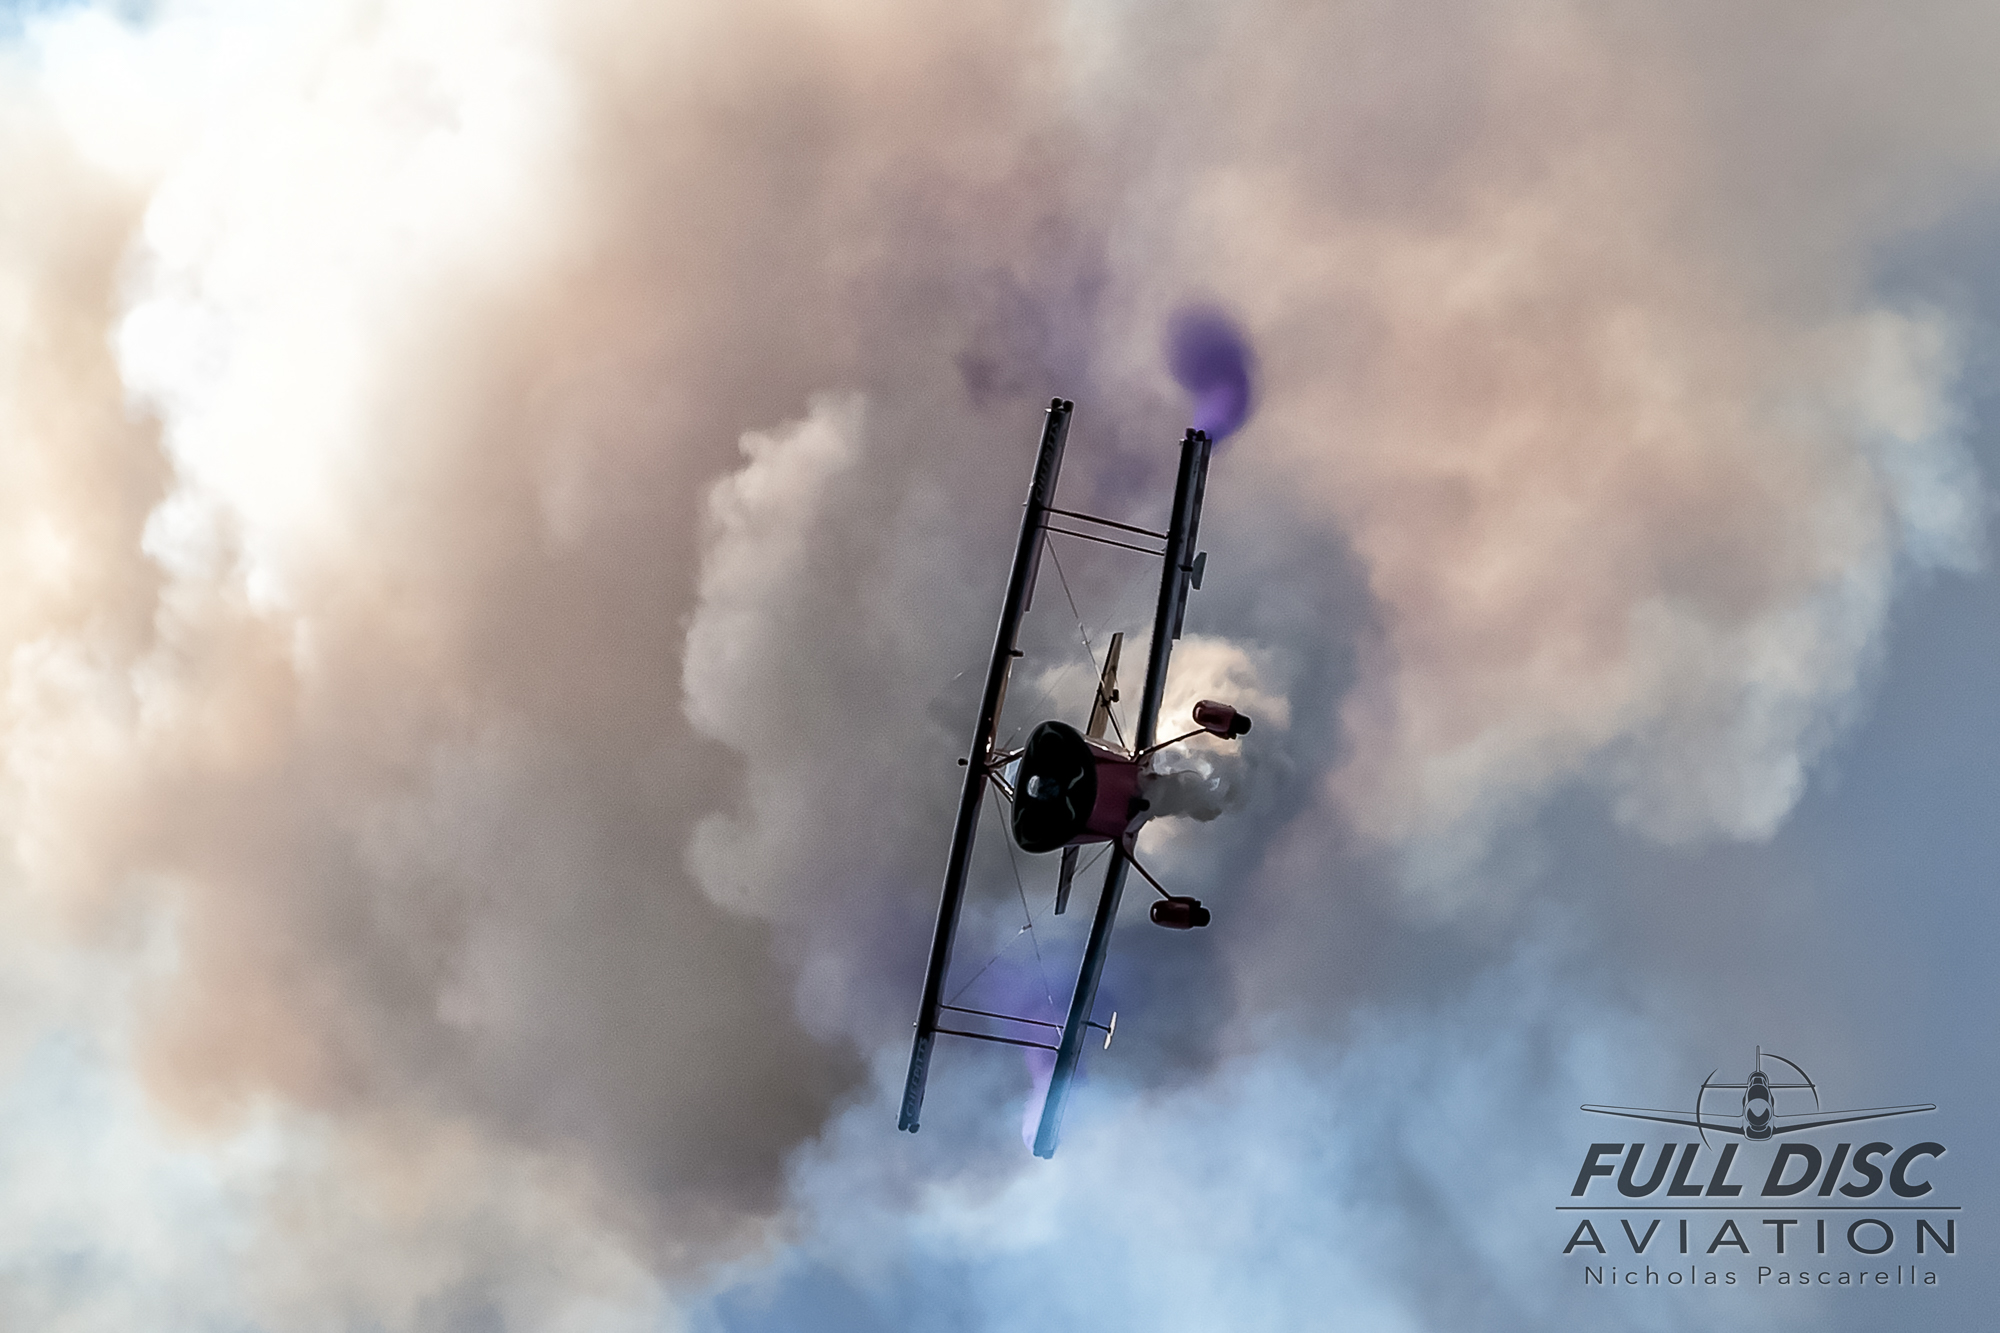 chefpitts_purplehaze_fallingbacktoearth_biplane__aviation__nickpascarella_nicholaspascarella_fulldiscaviation_leasewebmanassasairshow.jpg